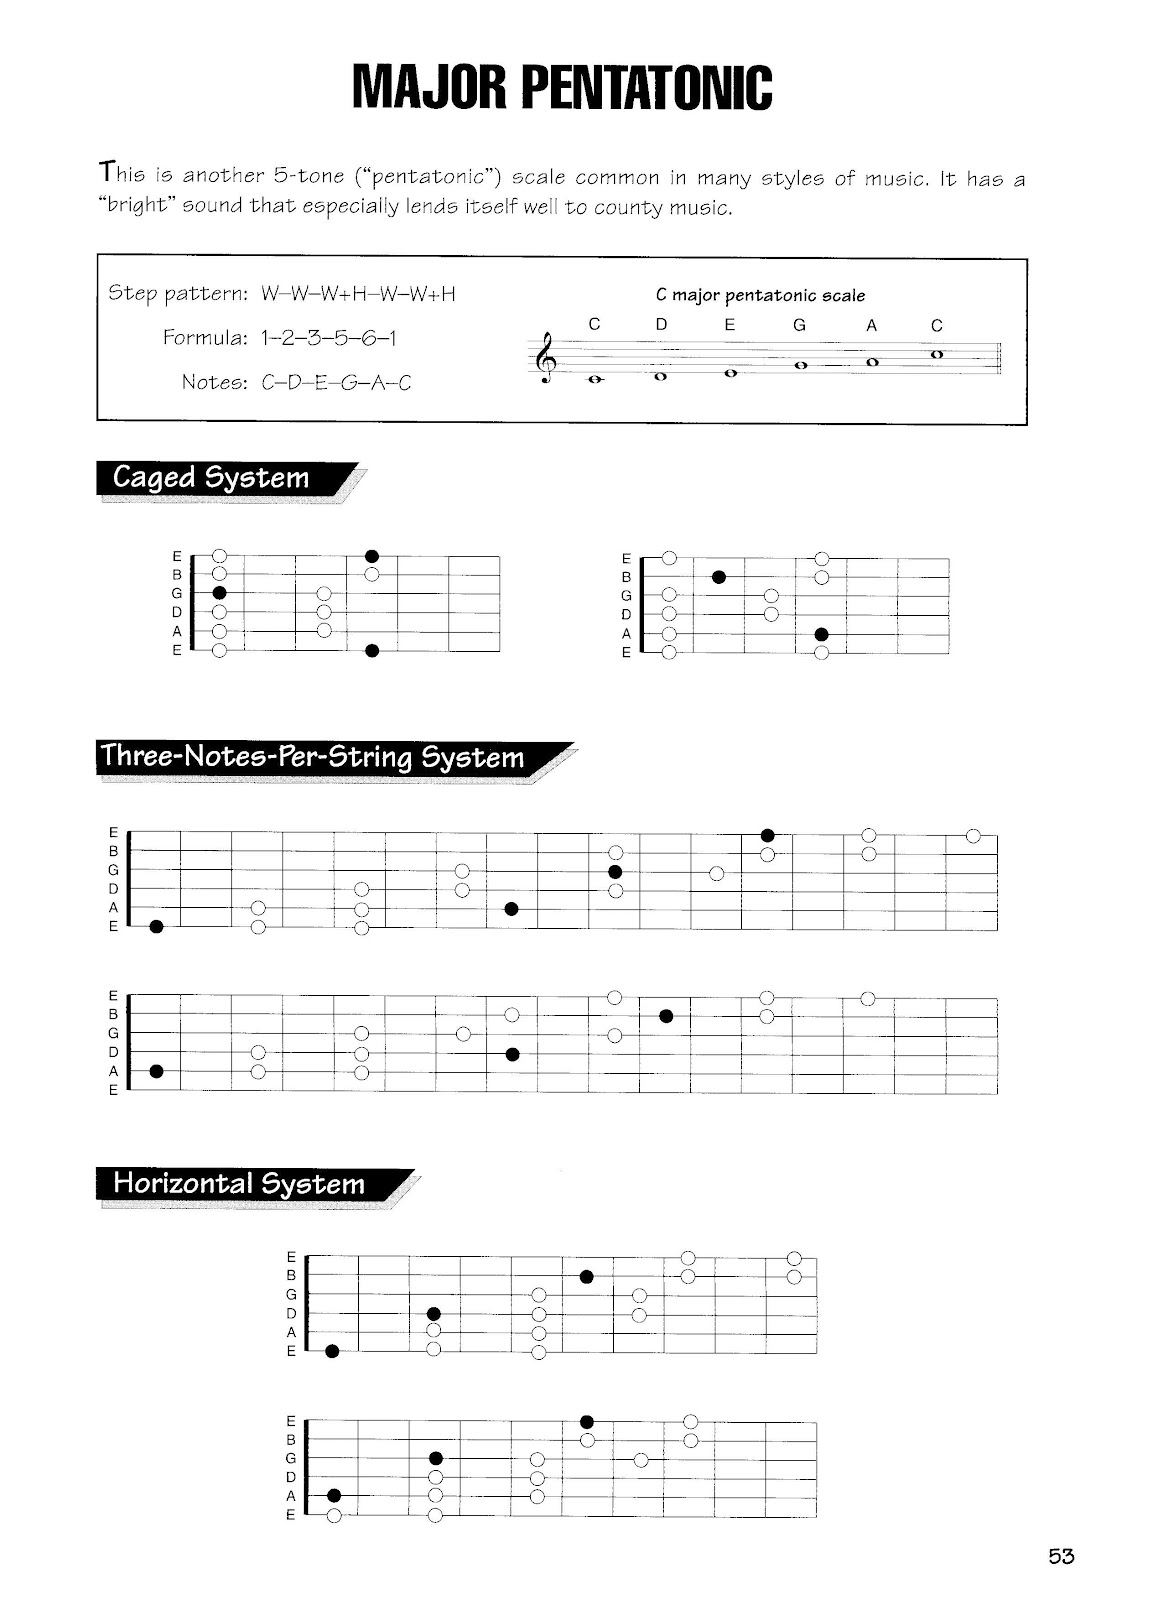 Phoe Aye Chords Amp Scales For Guitar